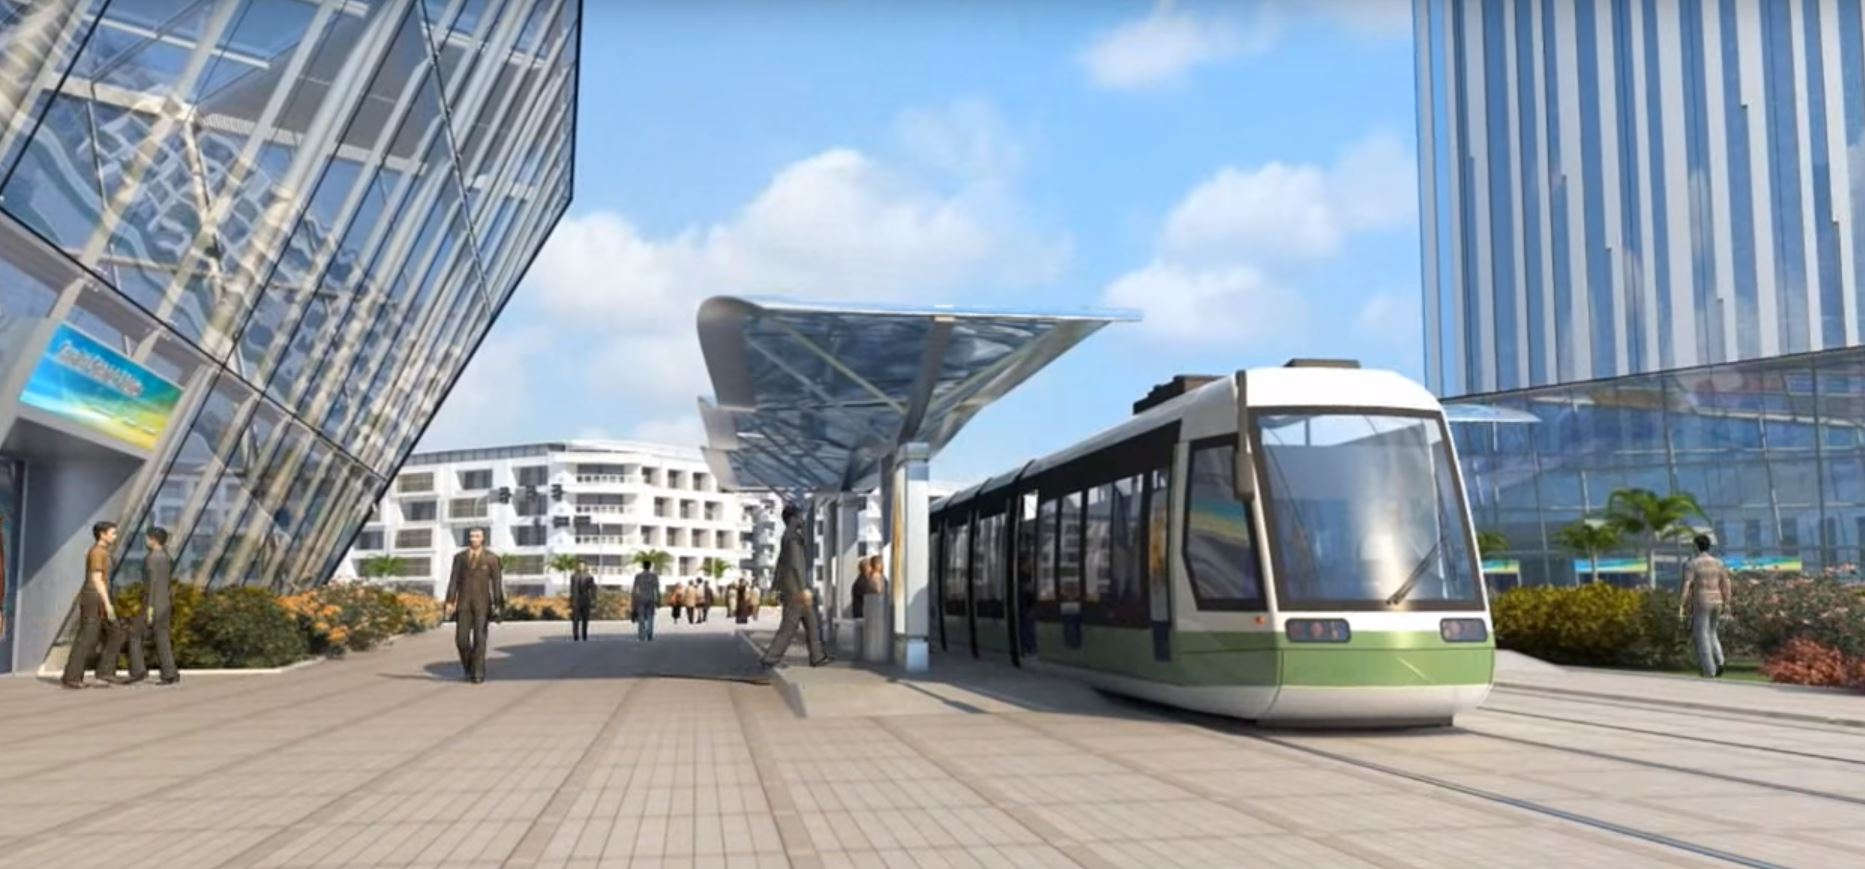 kitchen showrooms steampunk appliances abu dhabi's metro rail system planned to launch in 2018